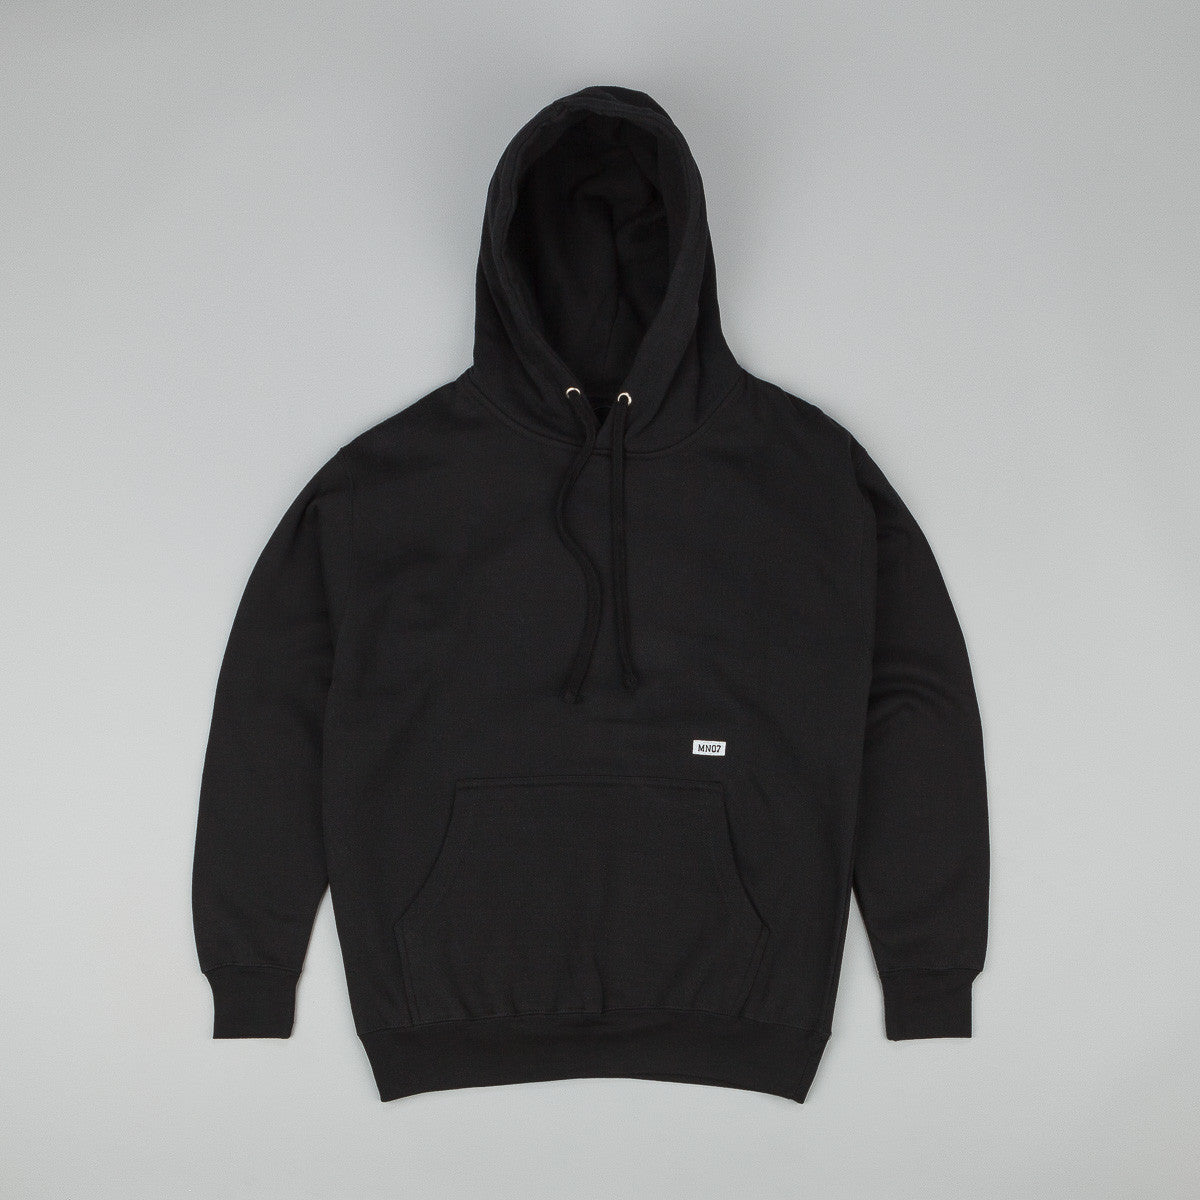 MN07 Stock Hooded Sweatshirt